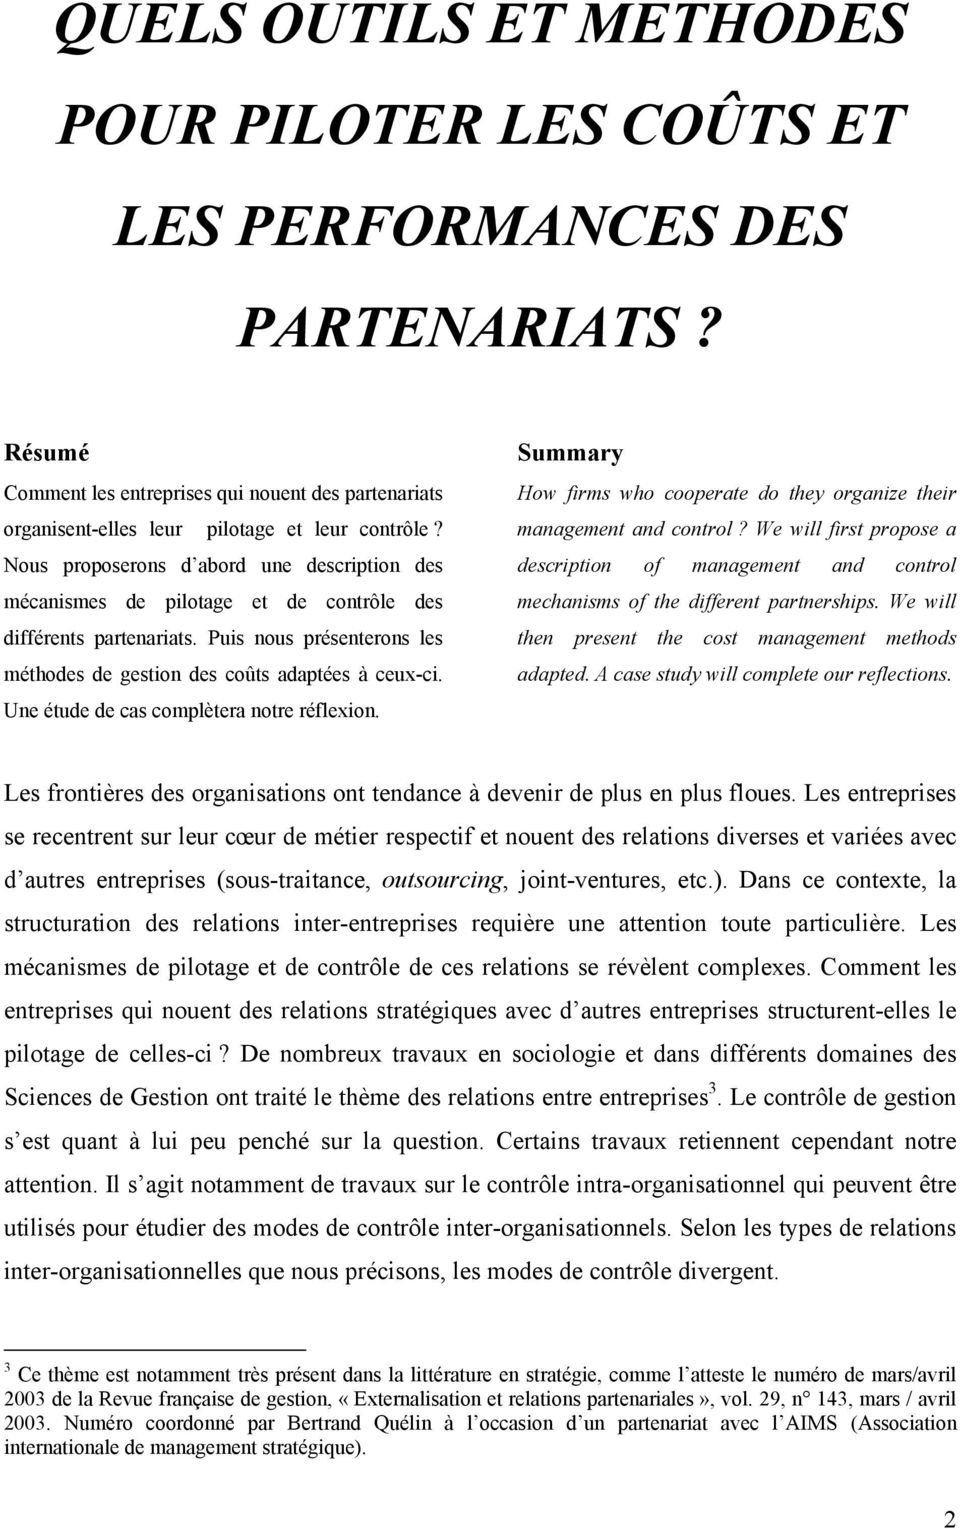 Une étude de cas complètera notre réflexion. Summary How firms who cooperate do they organize their management and control?